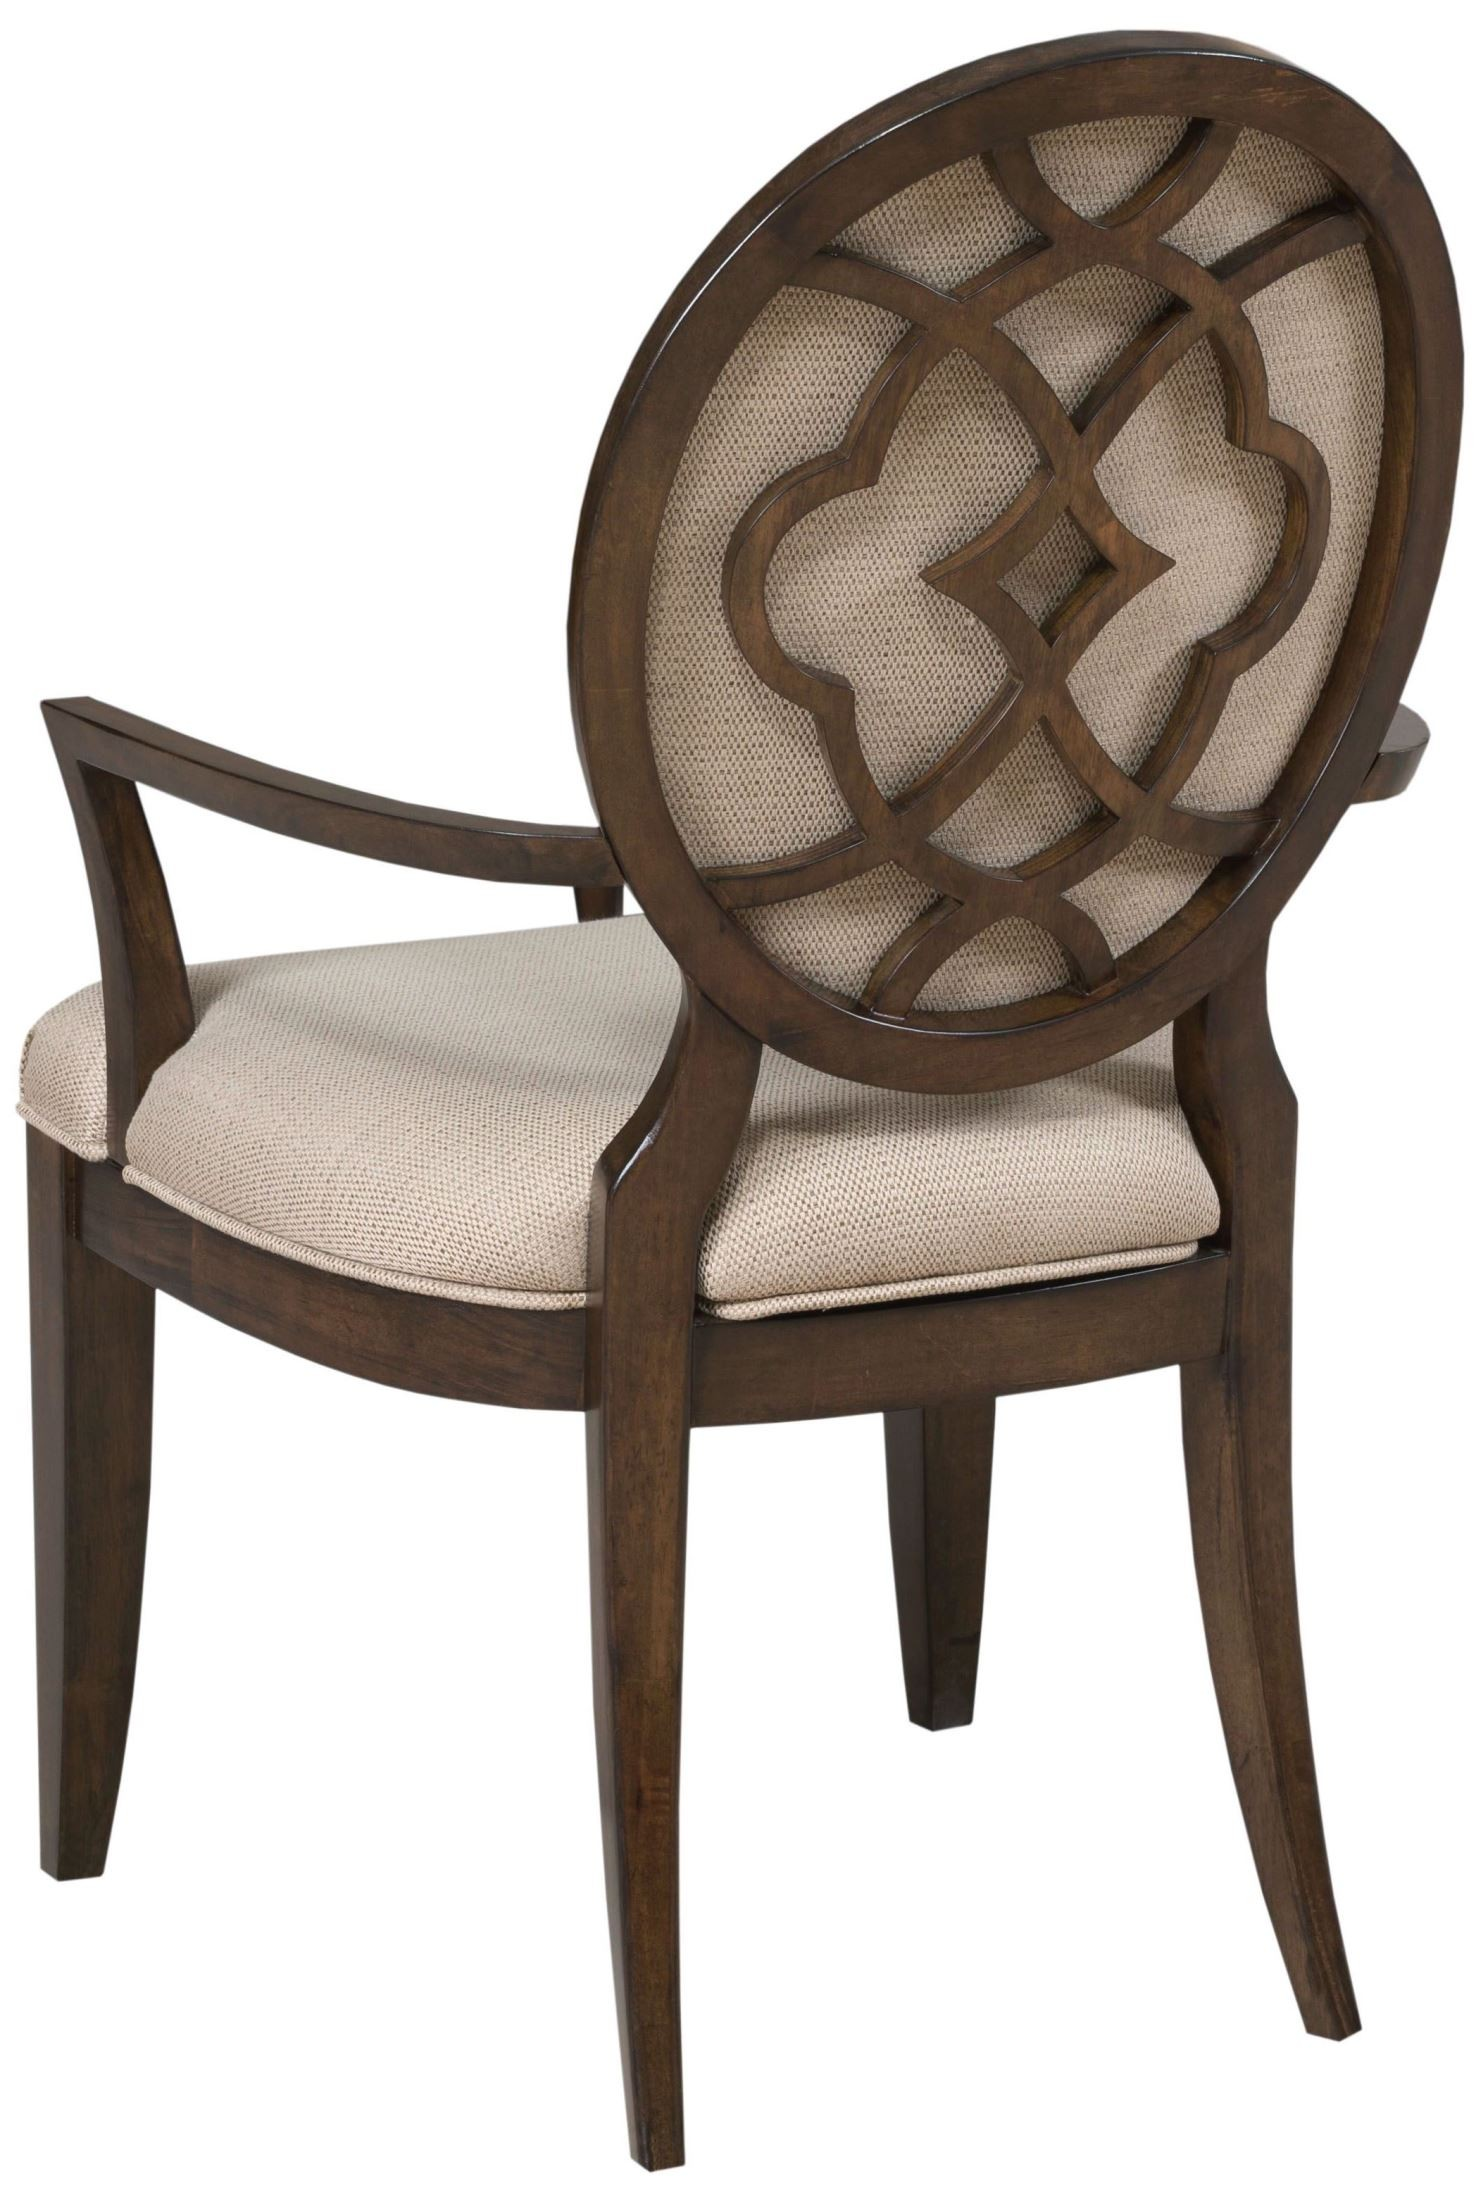 Decorative Arm Chairs ~ Grantham hall deep coffee decorative upholstered arm chair